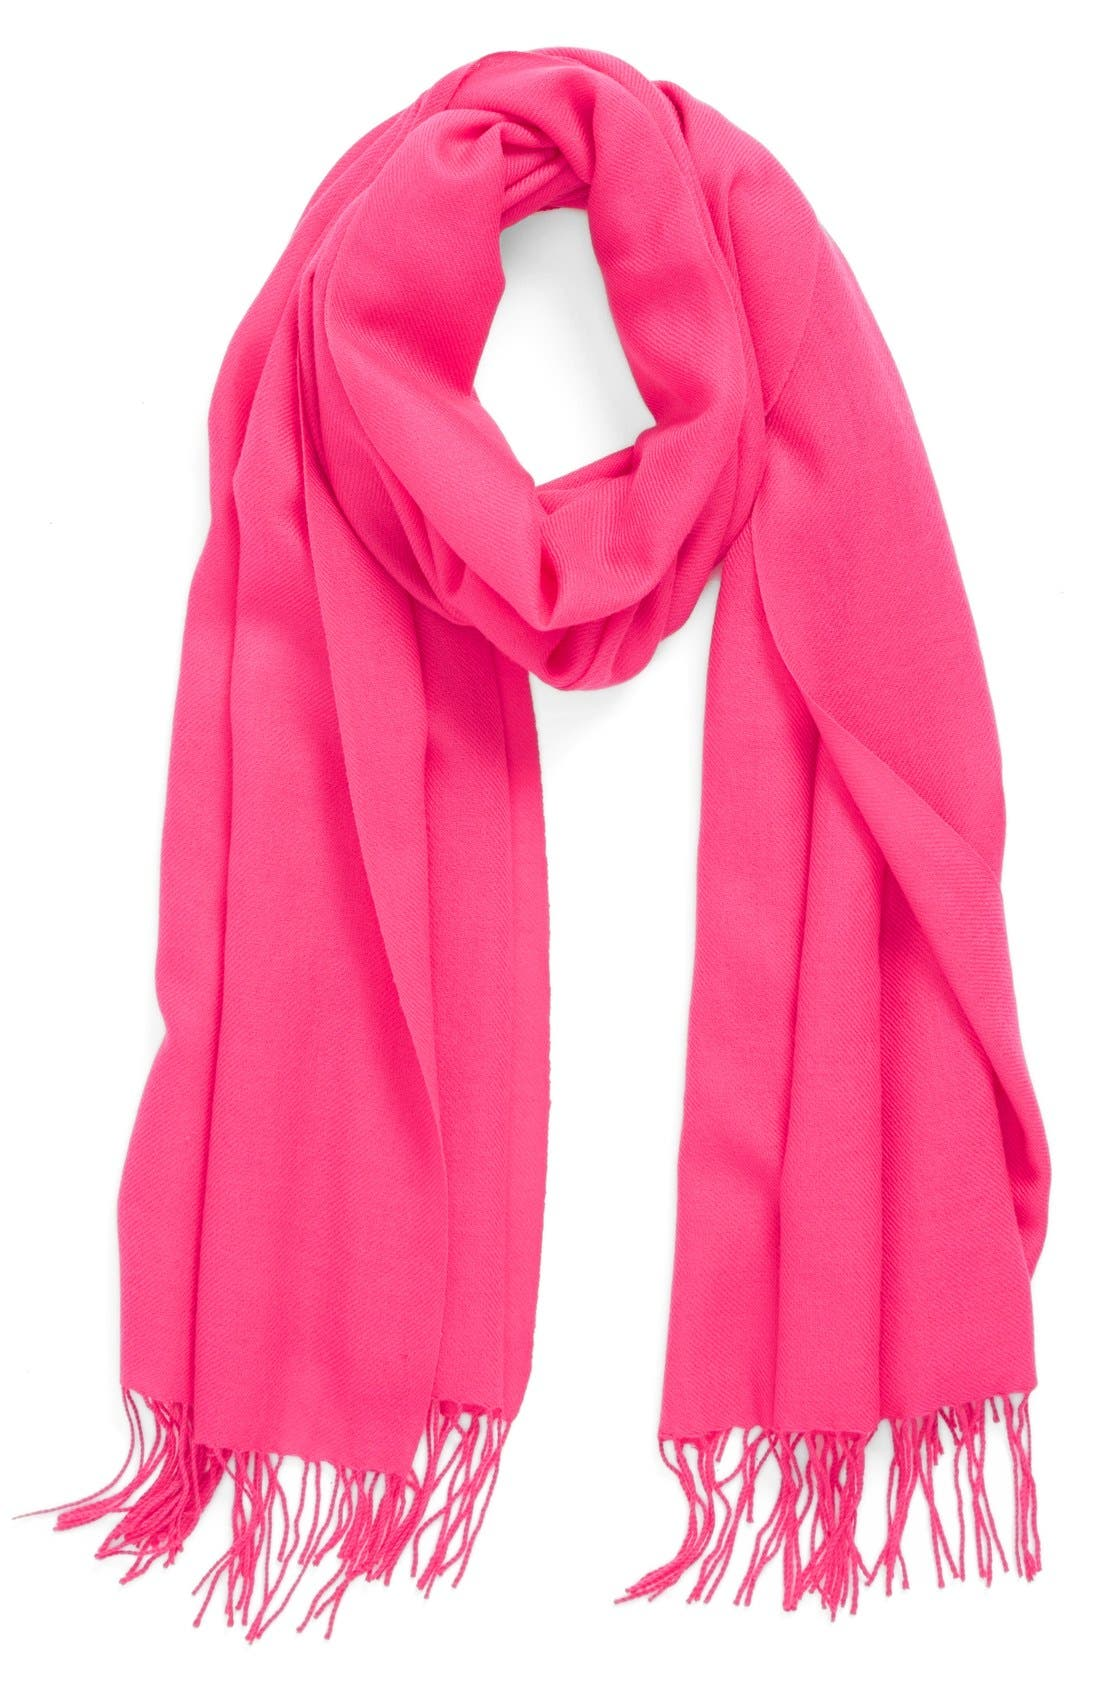 Alternate Image 1 Selected - Nordstrom Tissue Weight Wool &Cashmere Scarf